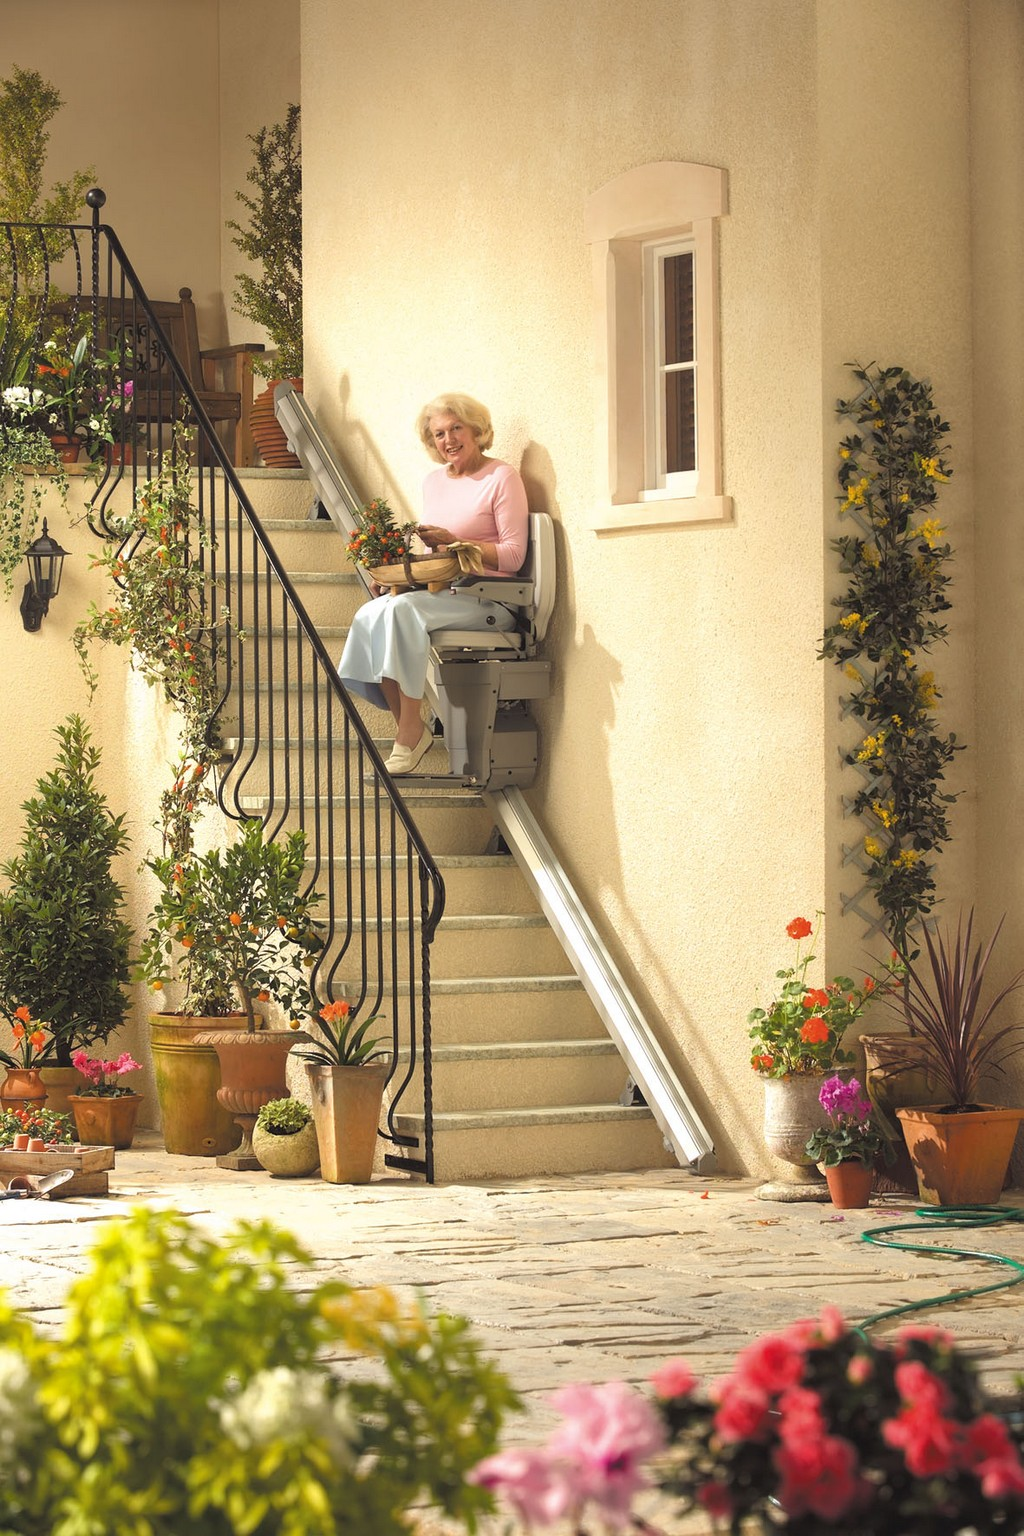 stair lift and stair clearance, summit stair lifts, new stairlifts for sale, curved stairlift